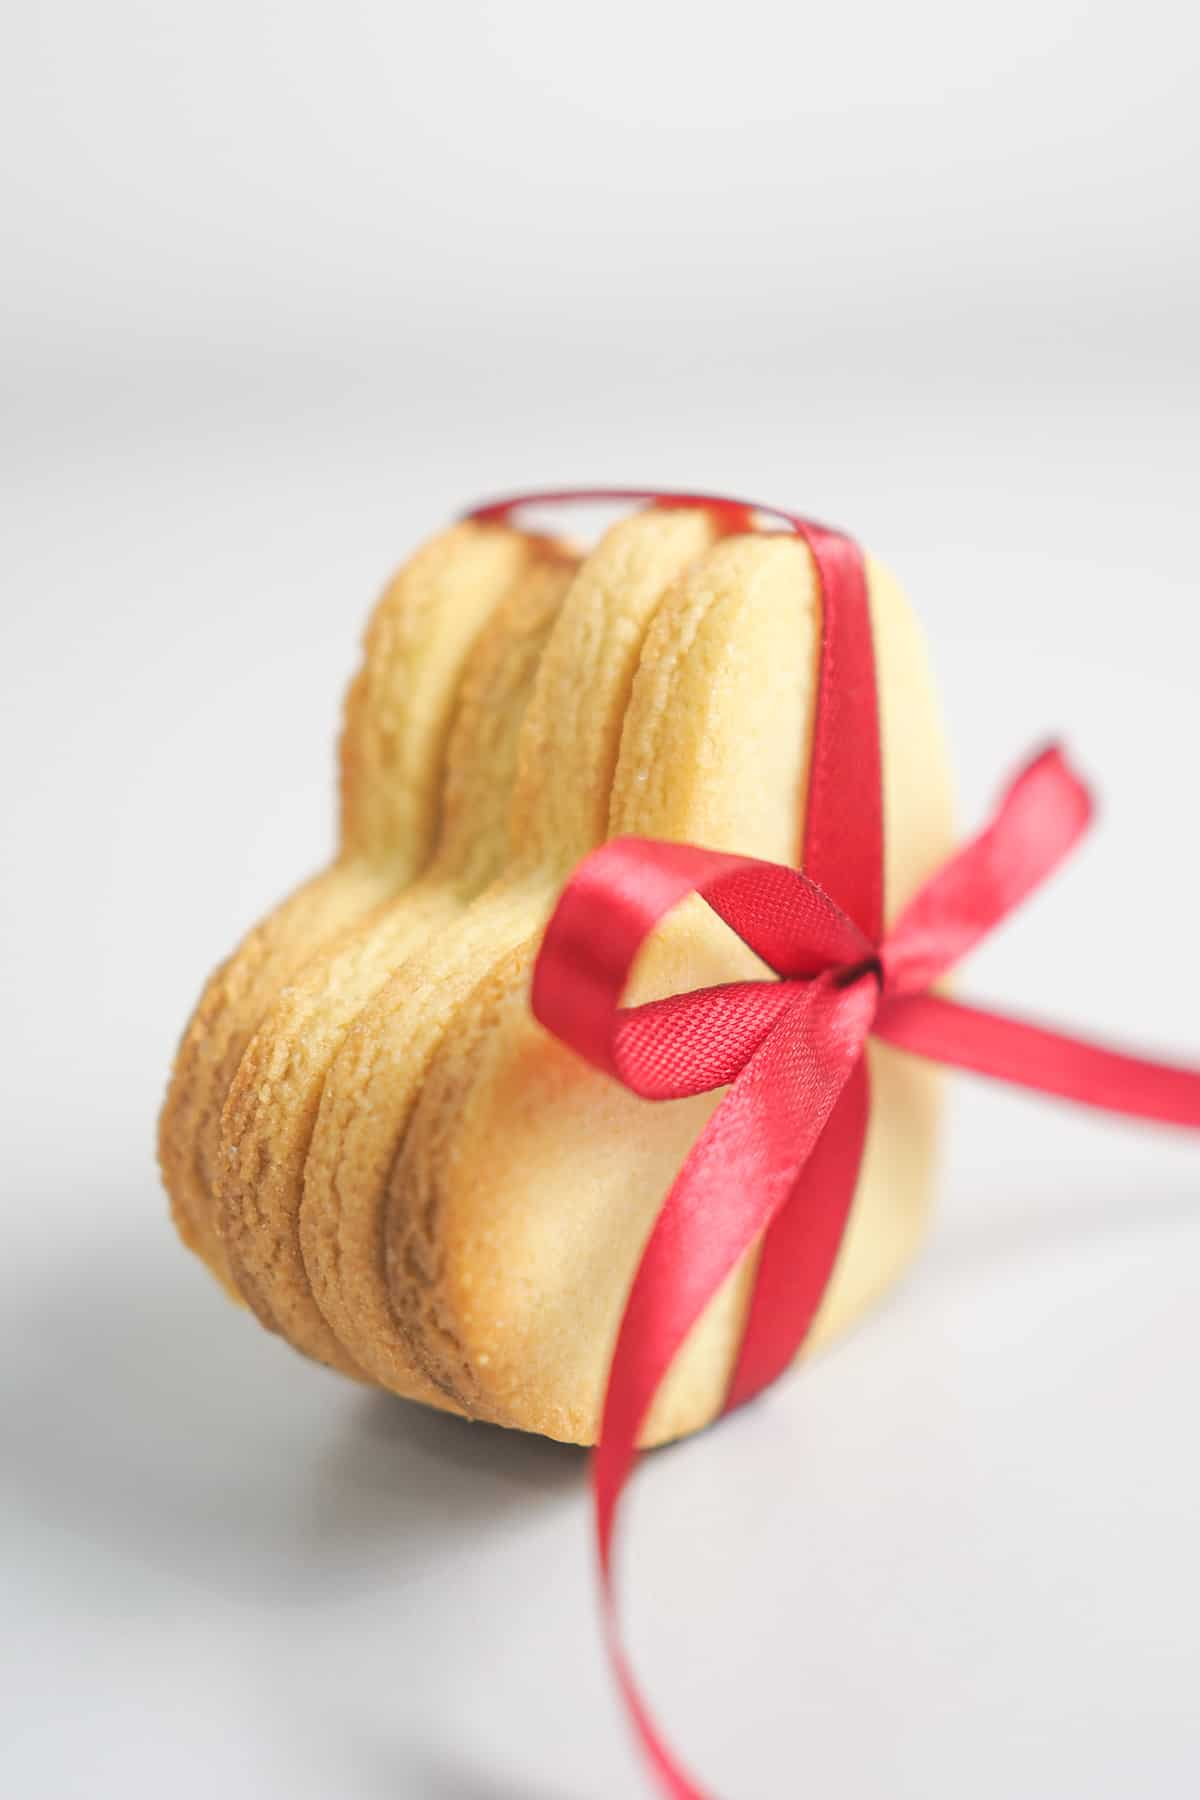 A stack of 4 heart shaped, no spread sugar cookies tied in red ribbon